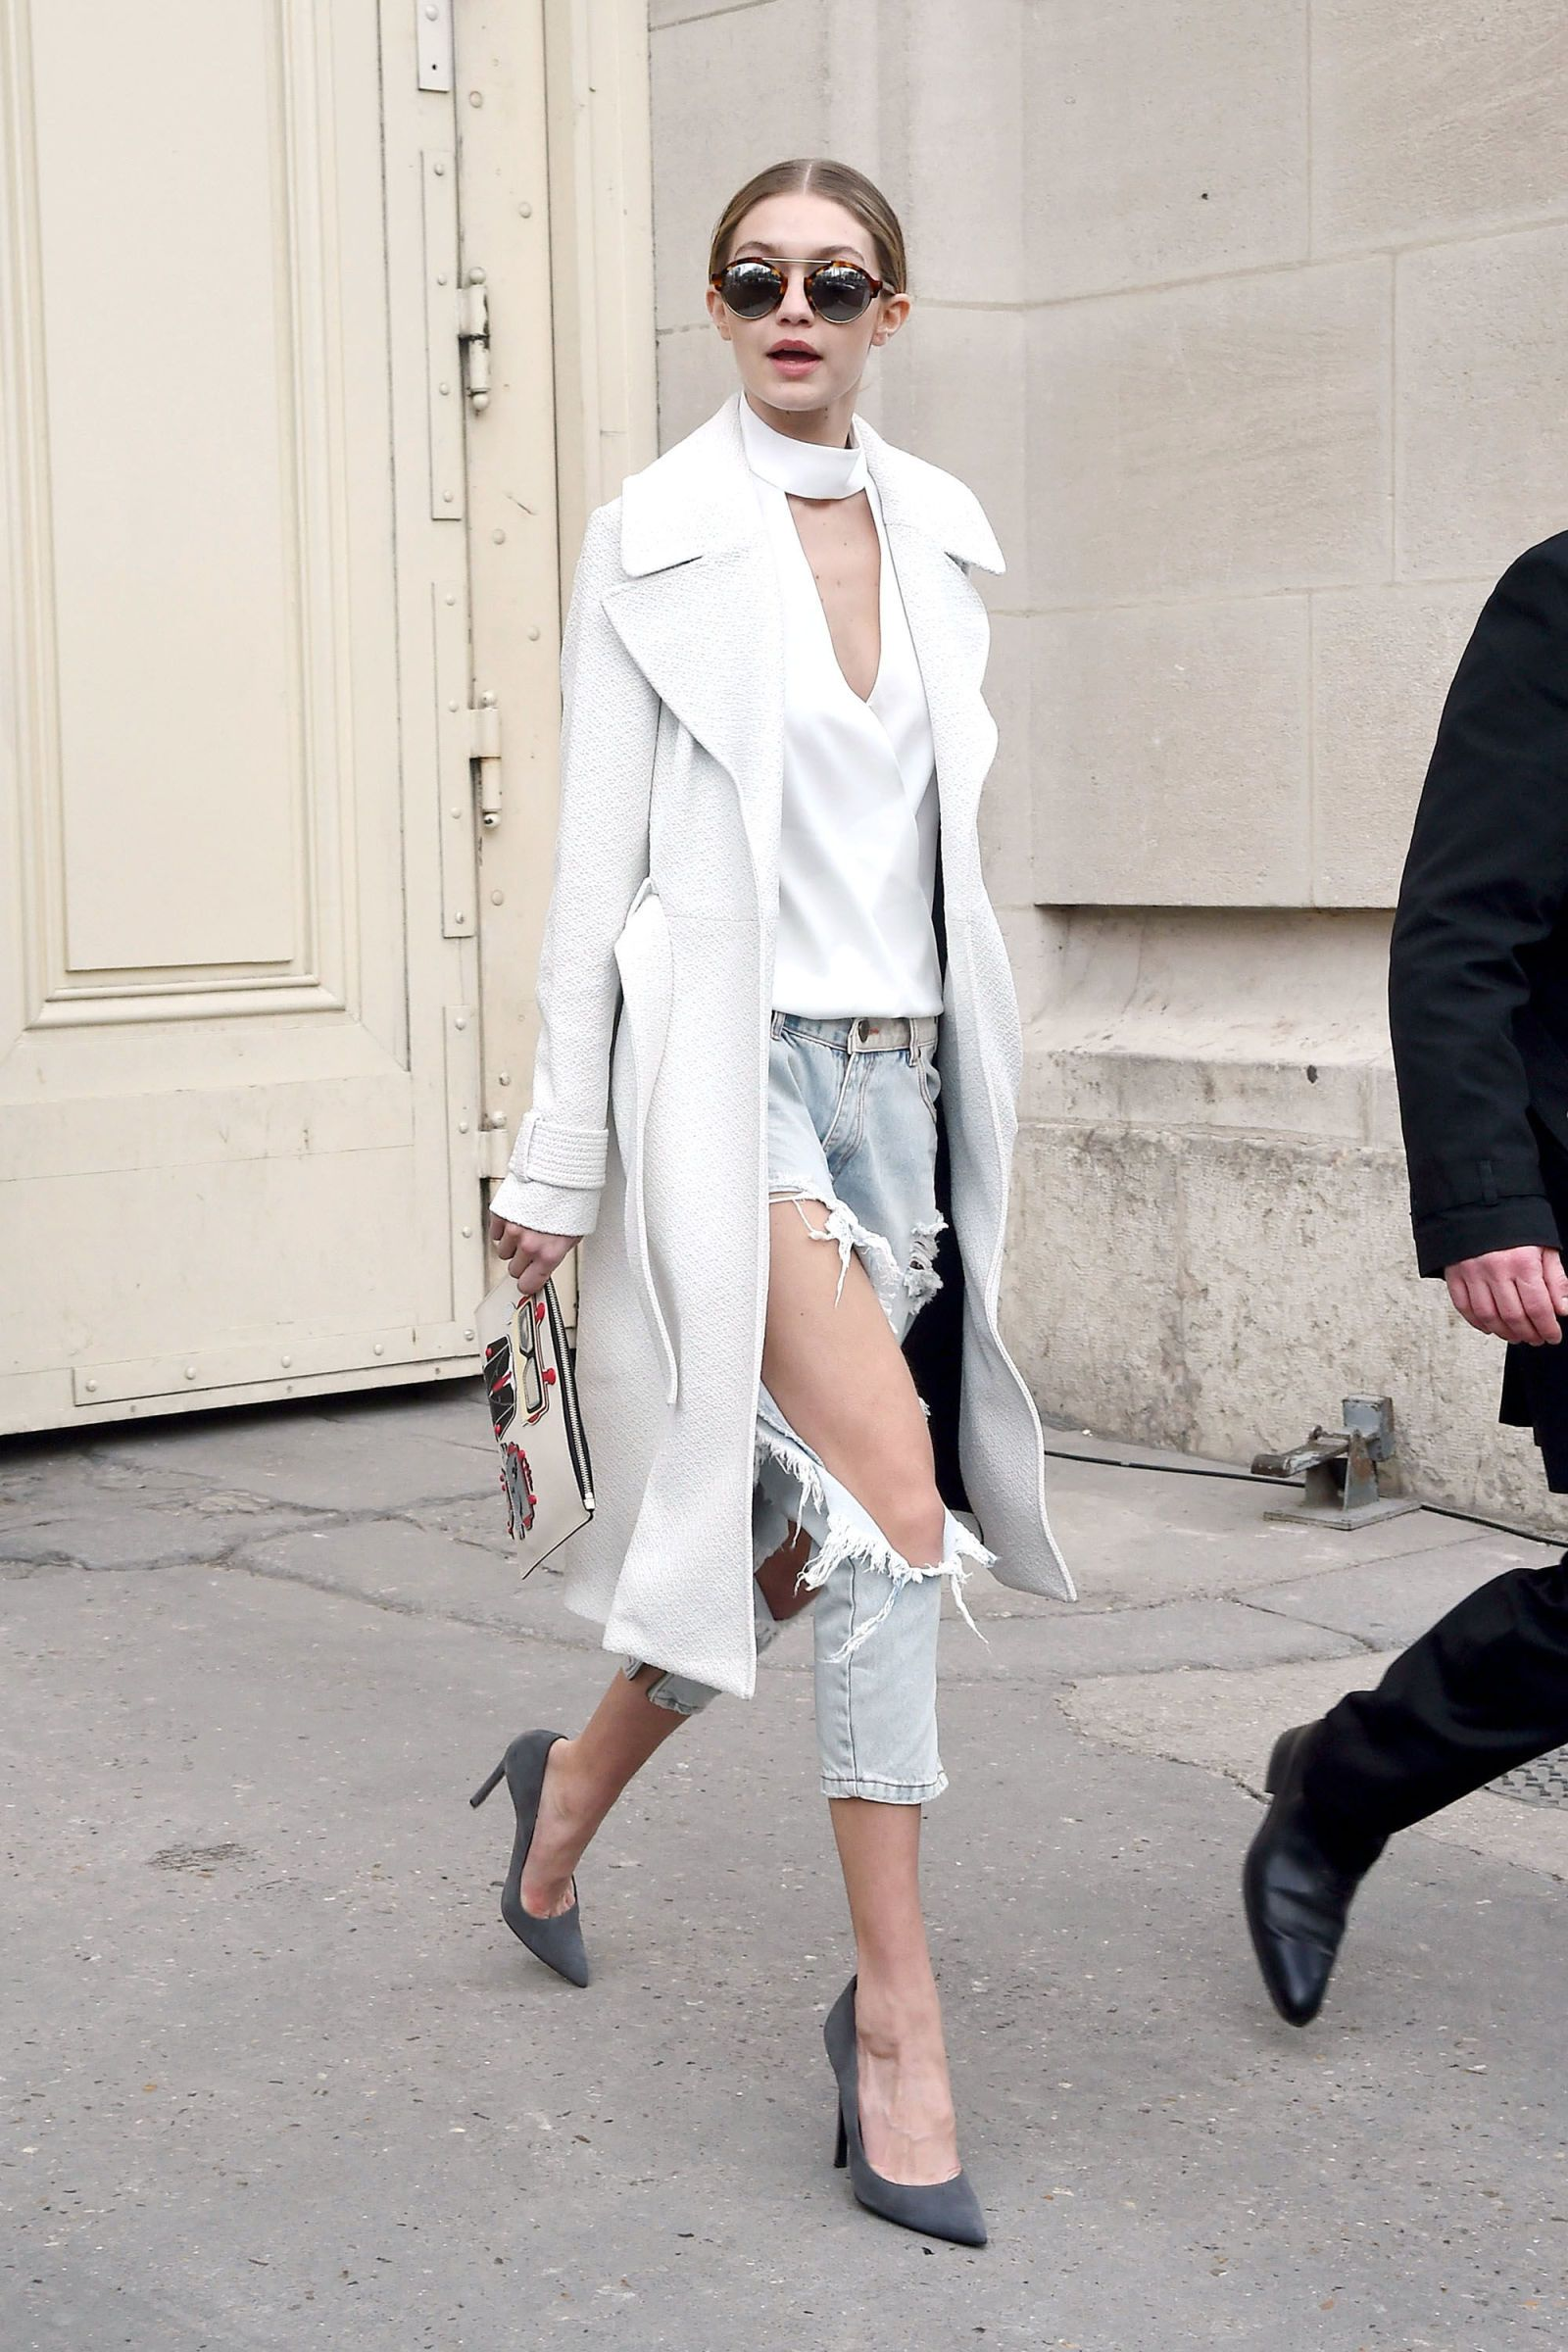 Gigi Hadid Adds A Sultry Touch To The Classic 9 5 Look